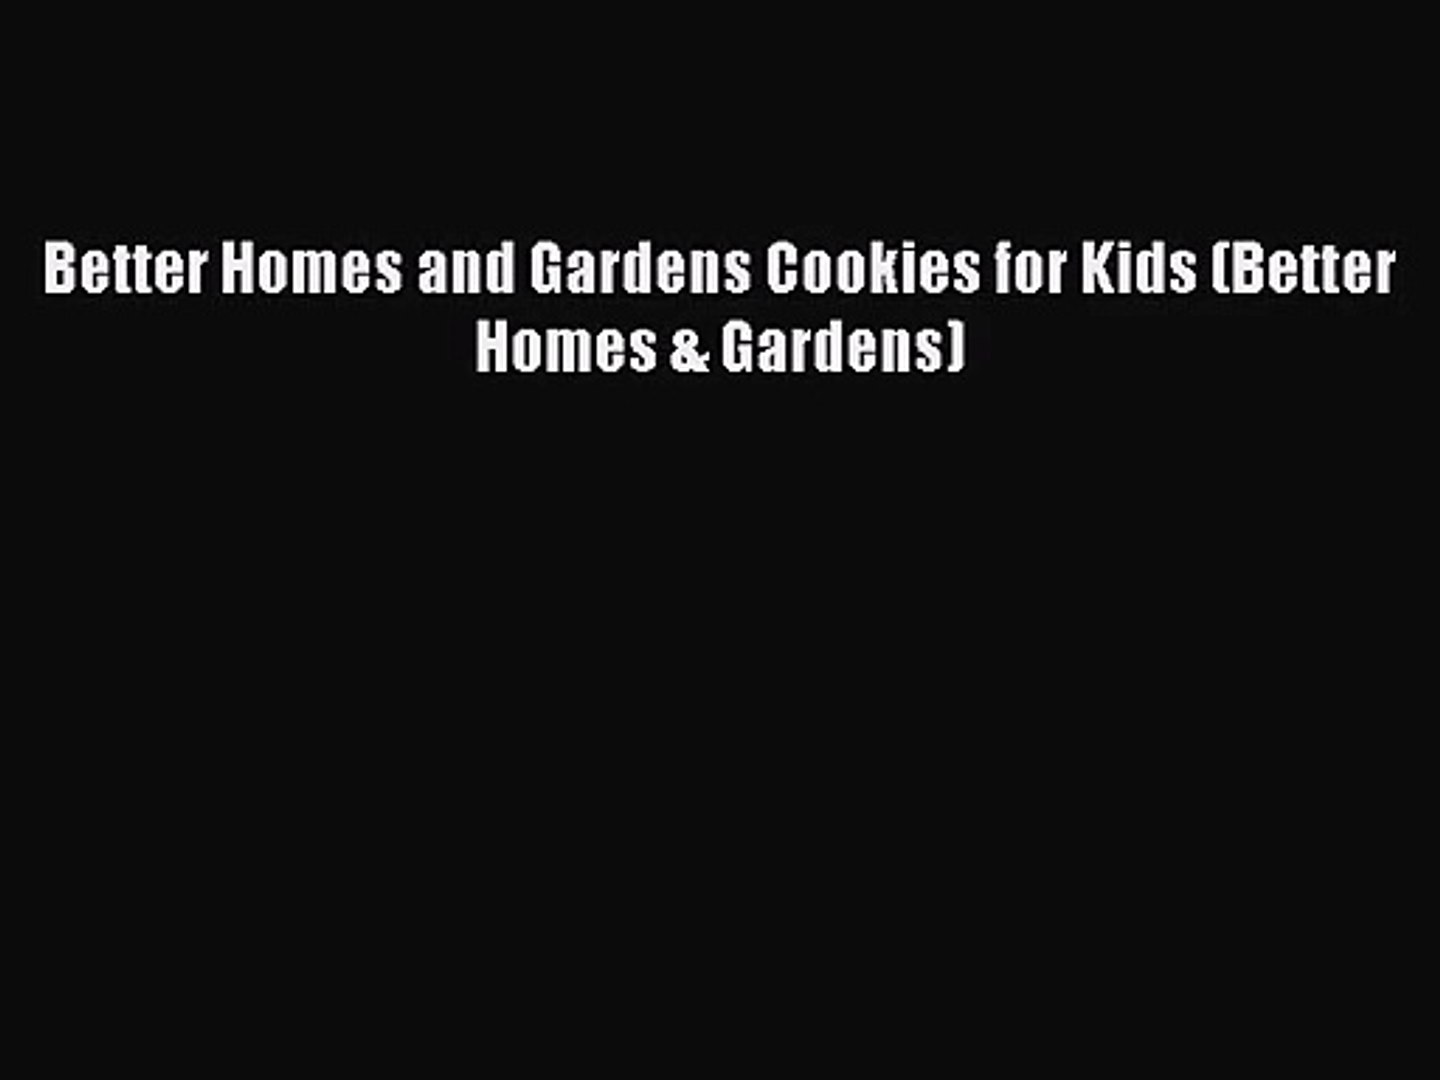 PDF Download Better Homes and Gardens Cookies for Kids (Better Homes & Gardens) PDF Online